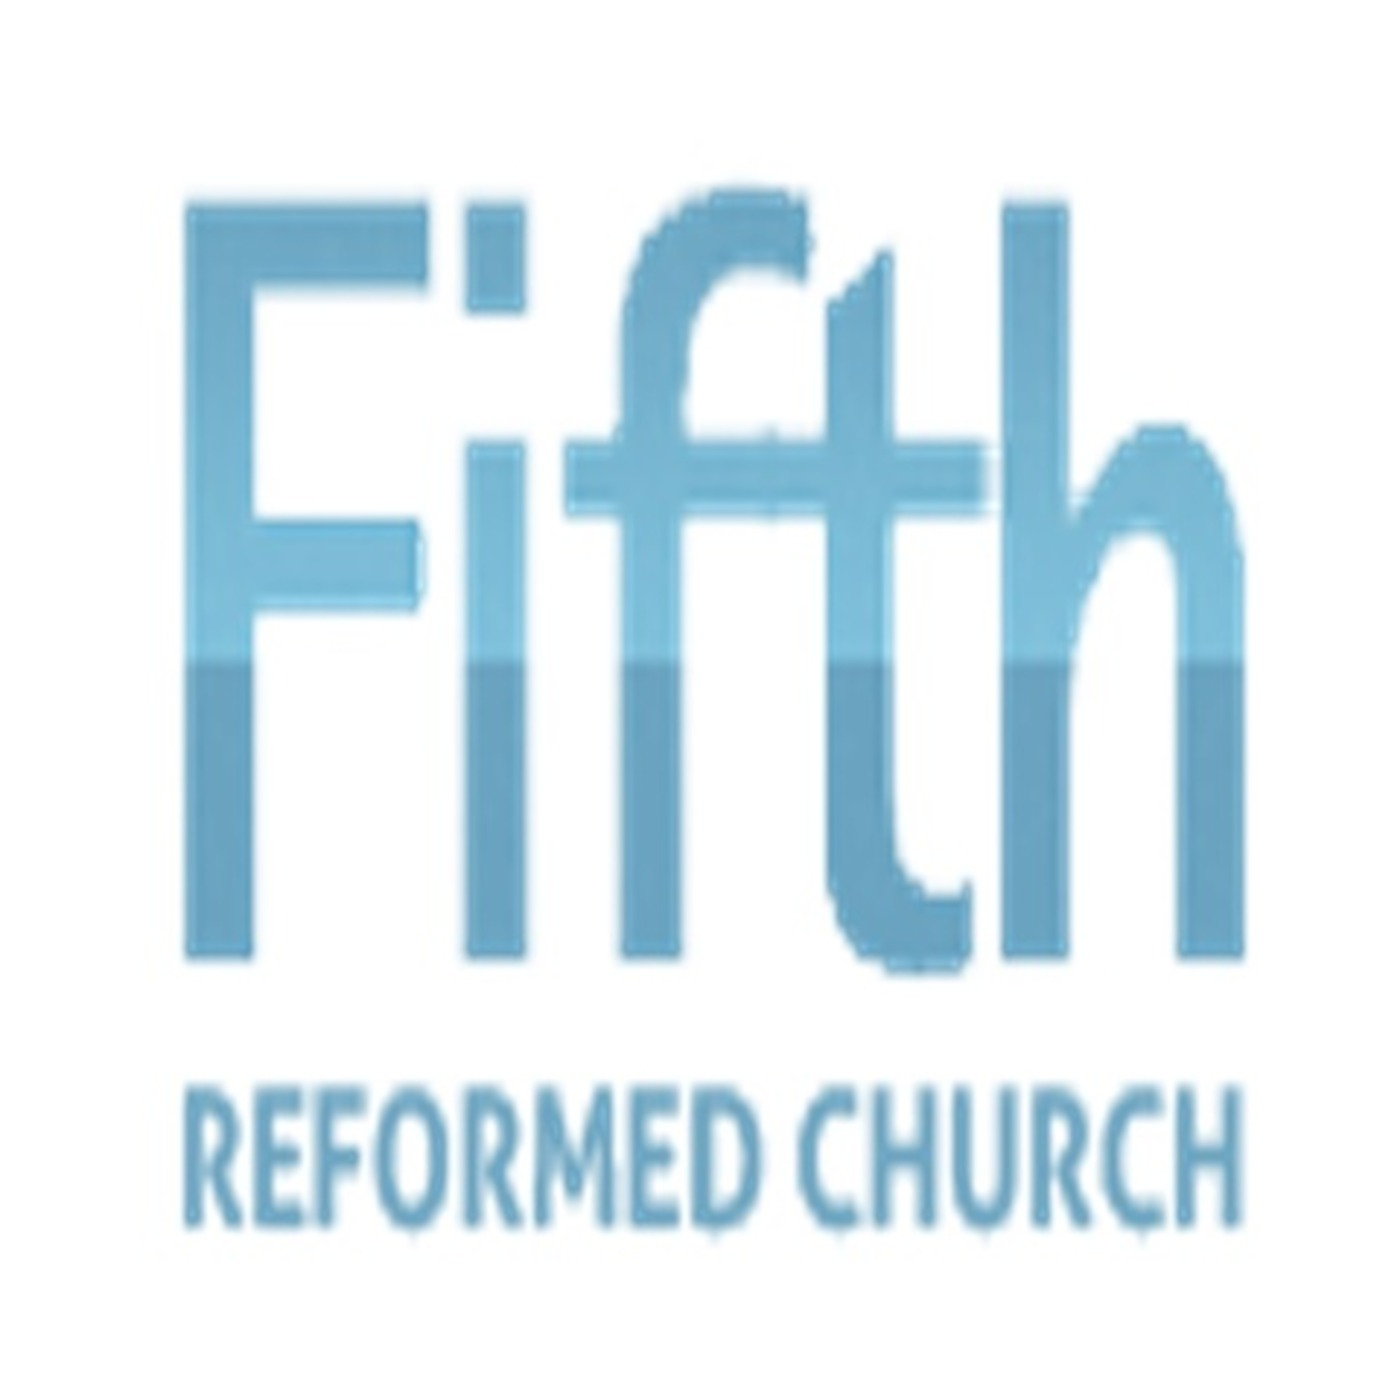 Fifth Reformed Church's Podcast